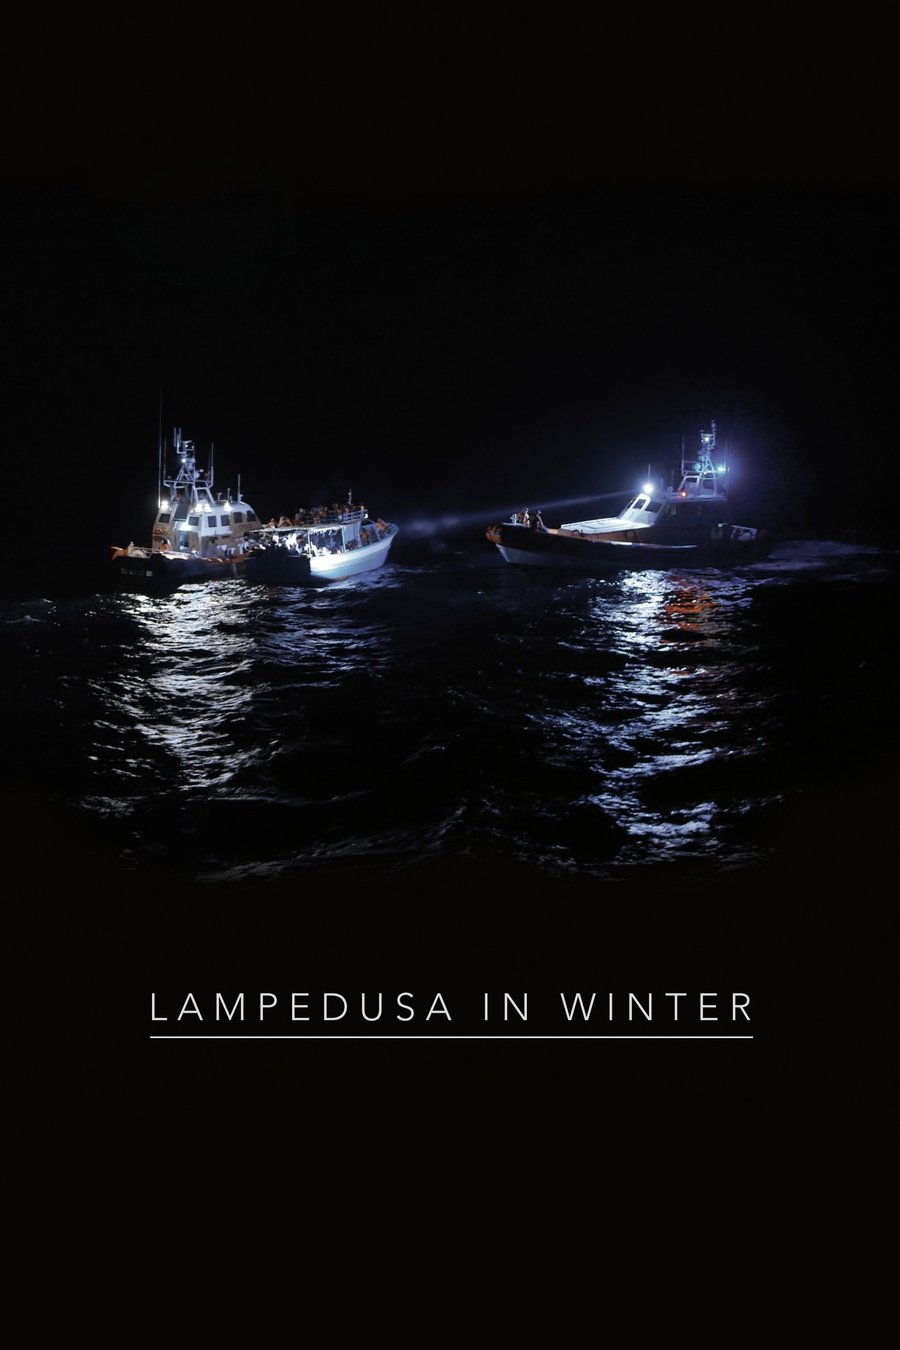 Lampedusa in Winter